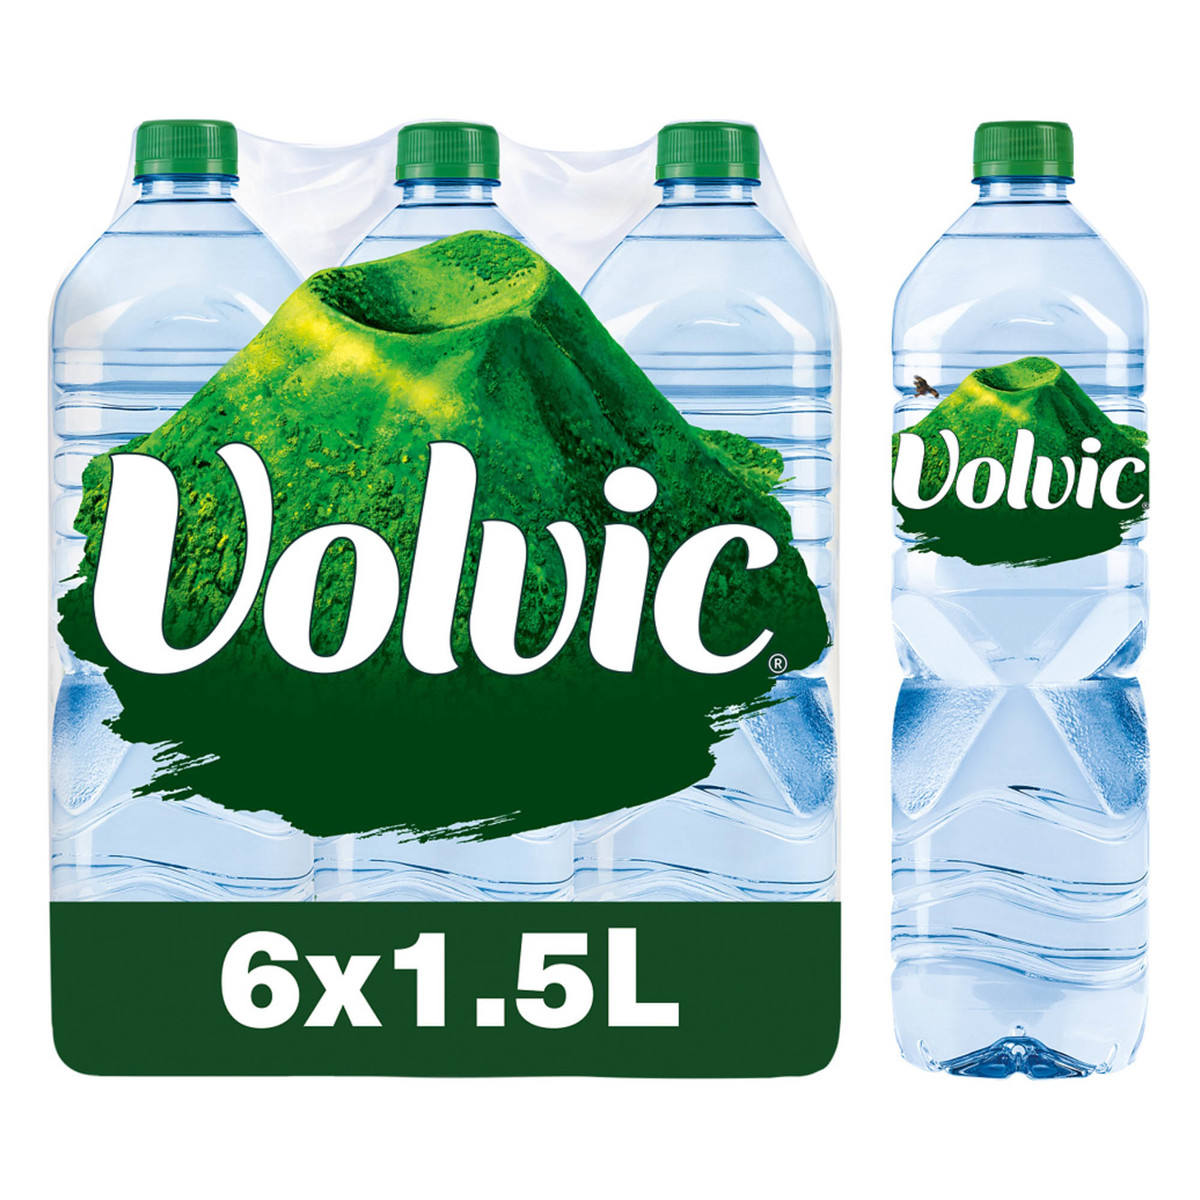 Volvic Sparkling Mineral Water, 6 x 1.5 L